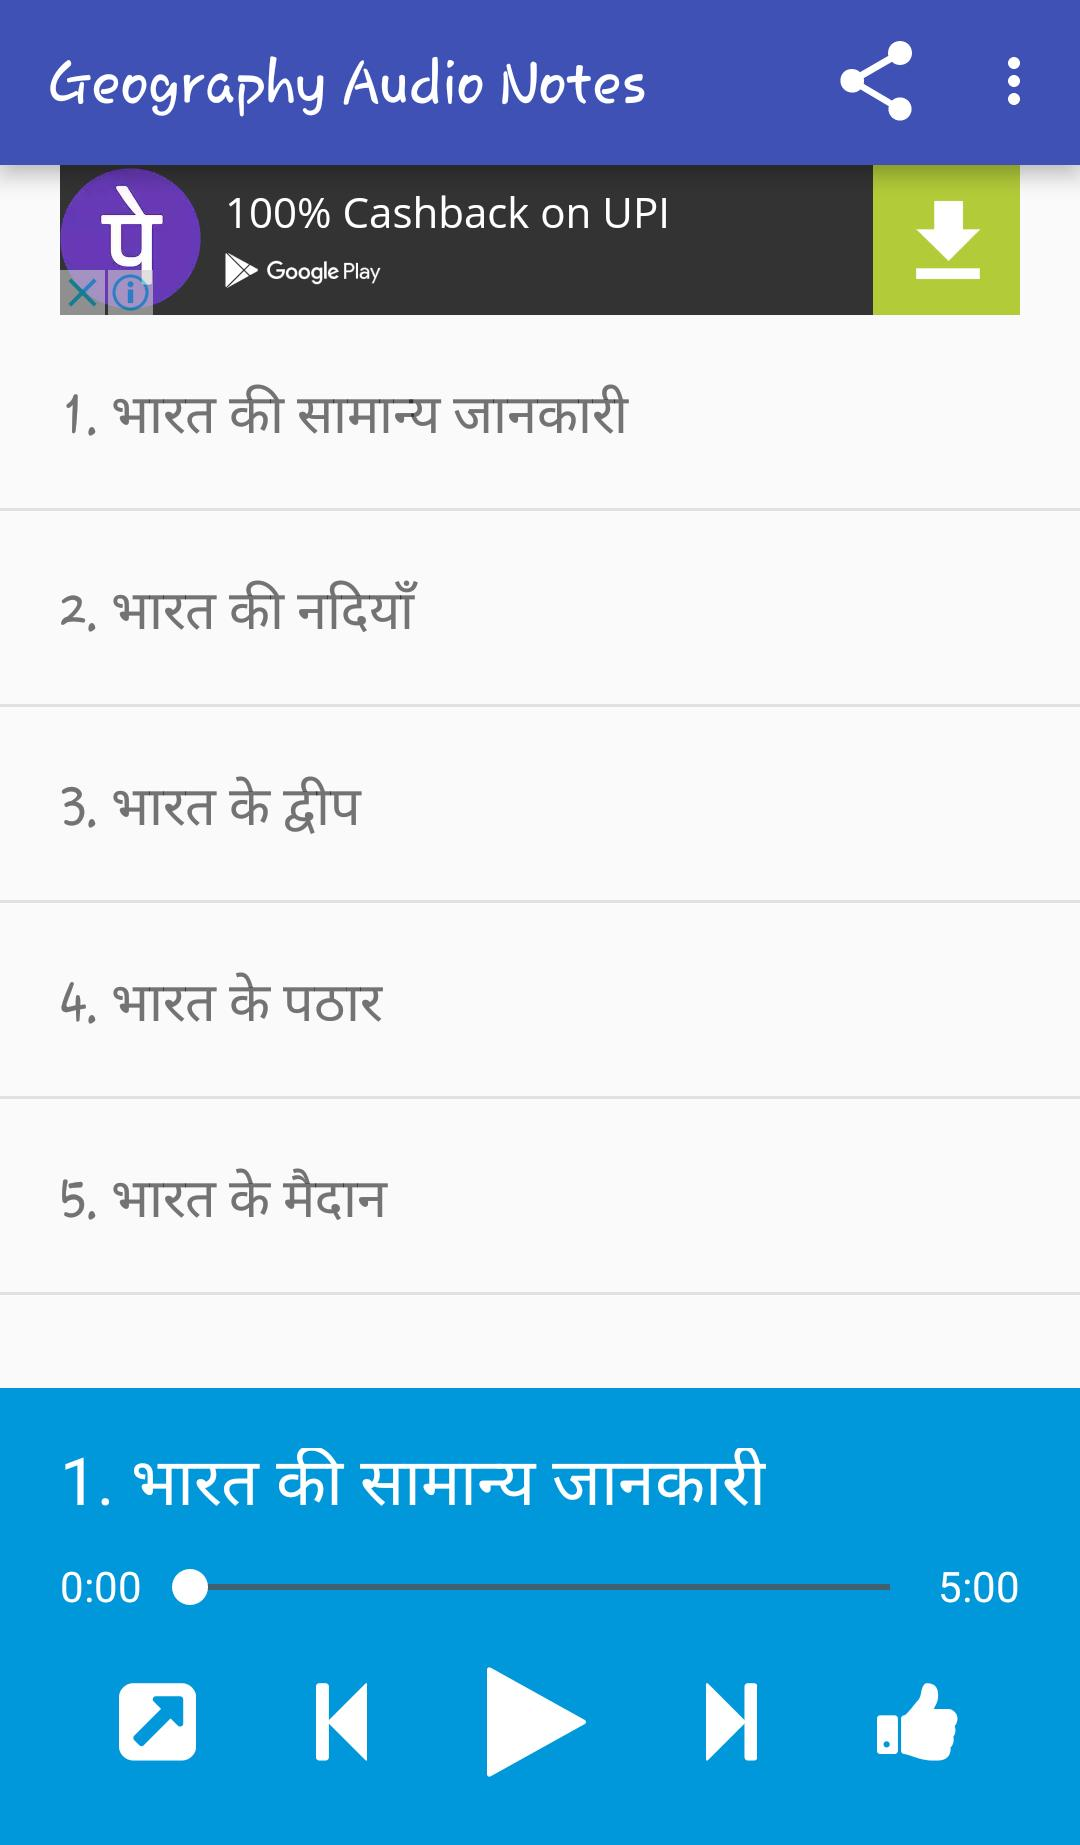 Indian Geography Audio Notes for Android - APK Download